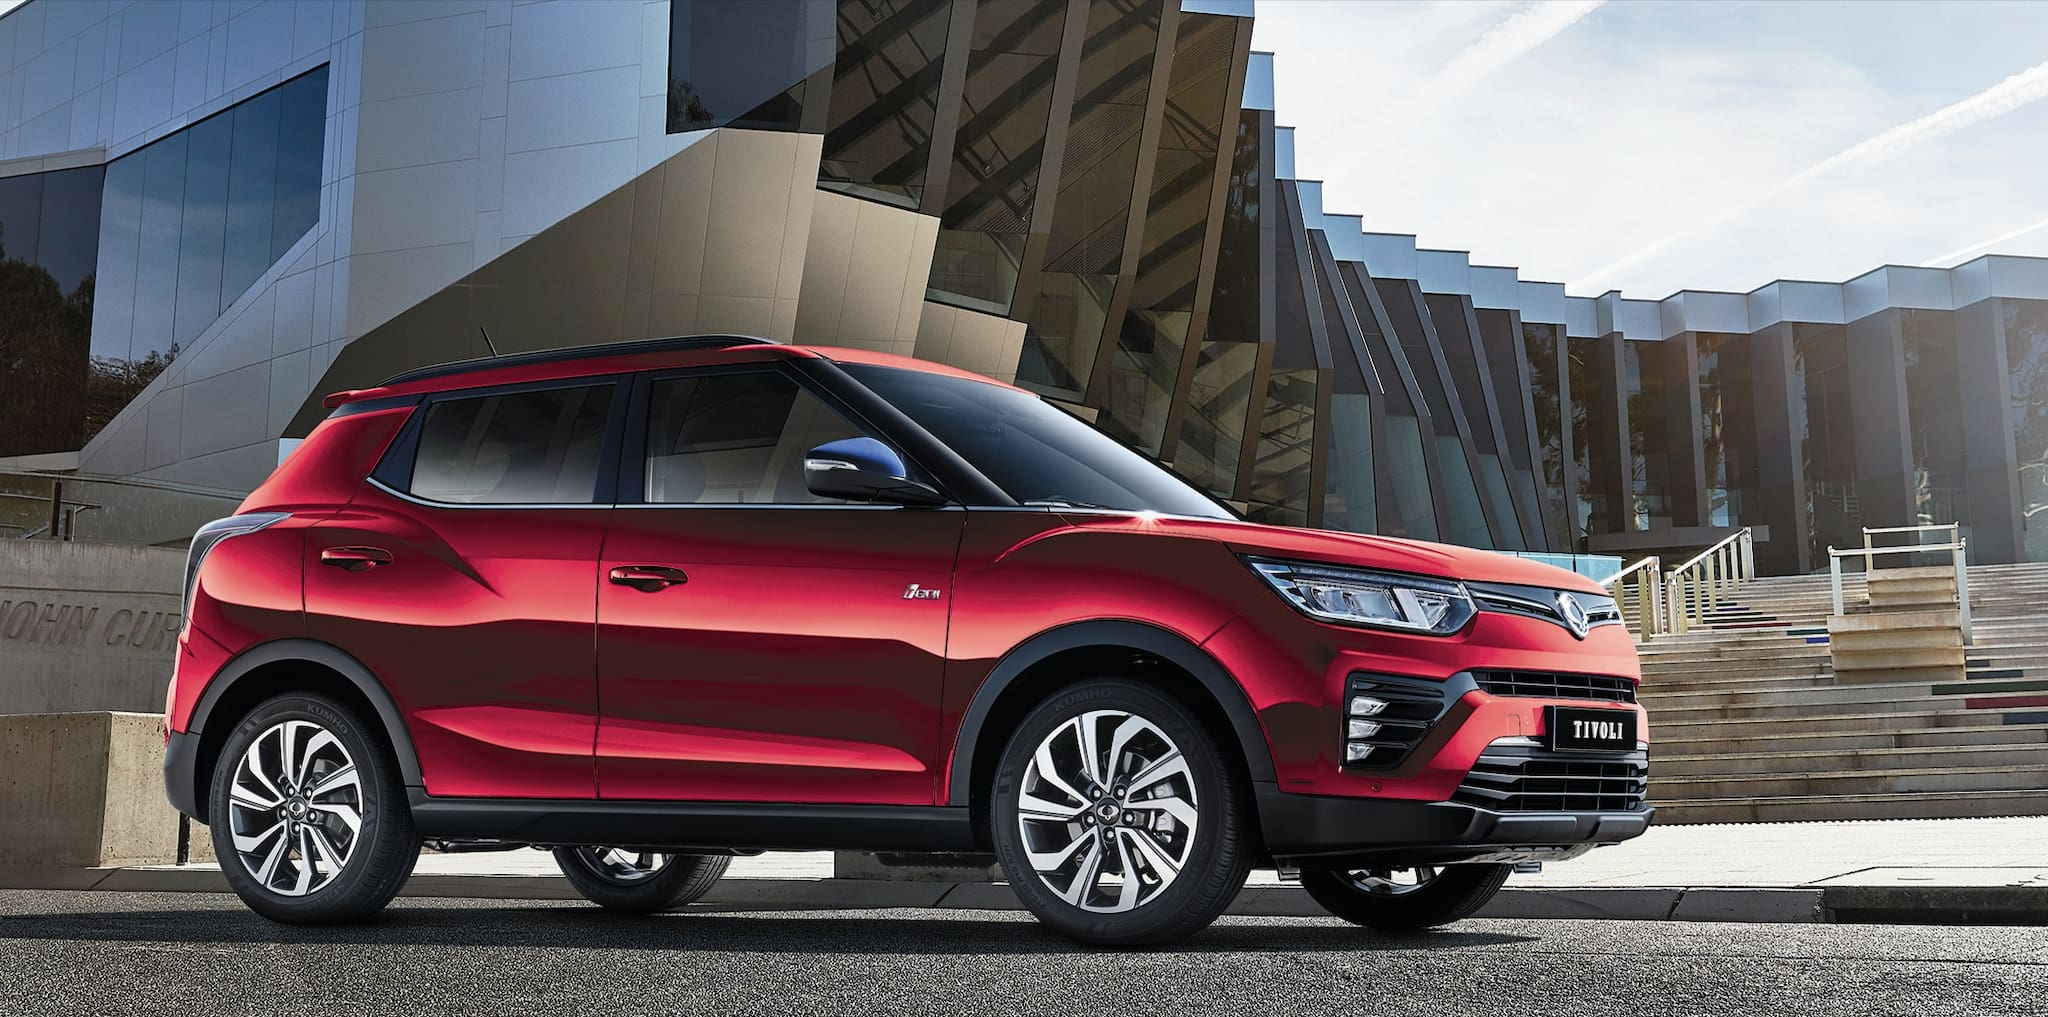 Ssangyong Brings Refreshed Version 2020 of the Tivoli, Now Diesel-Powered